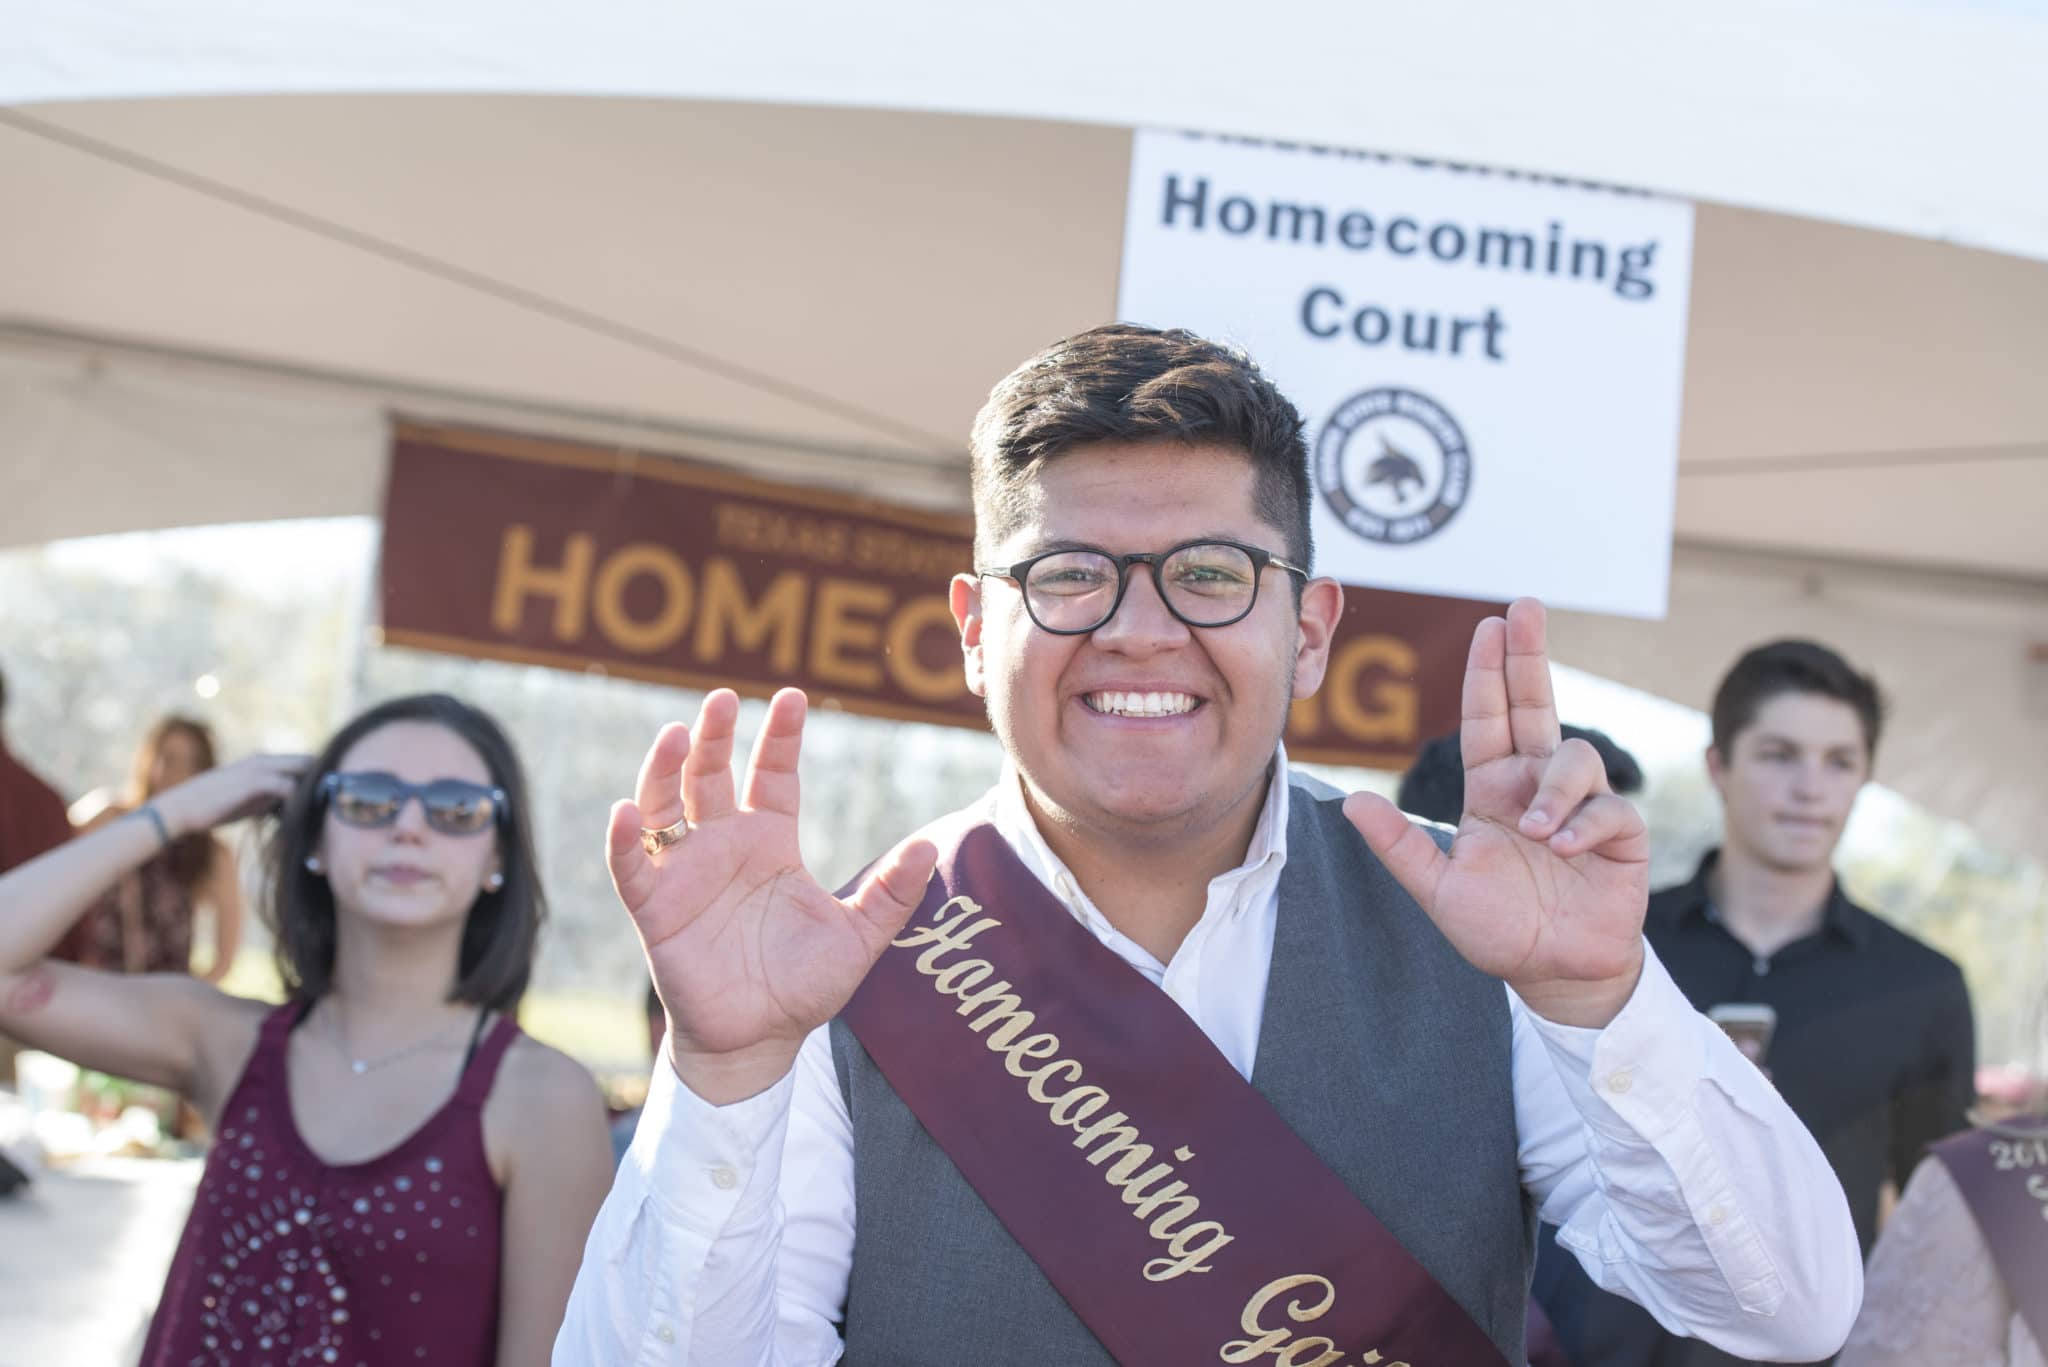 Male Gaillardian nominee showing off Bobcat pride at Homecoming tailgate